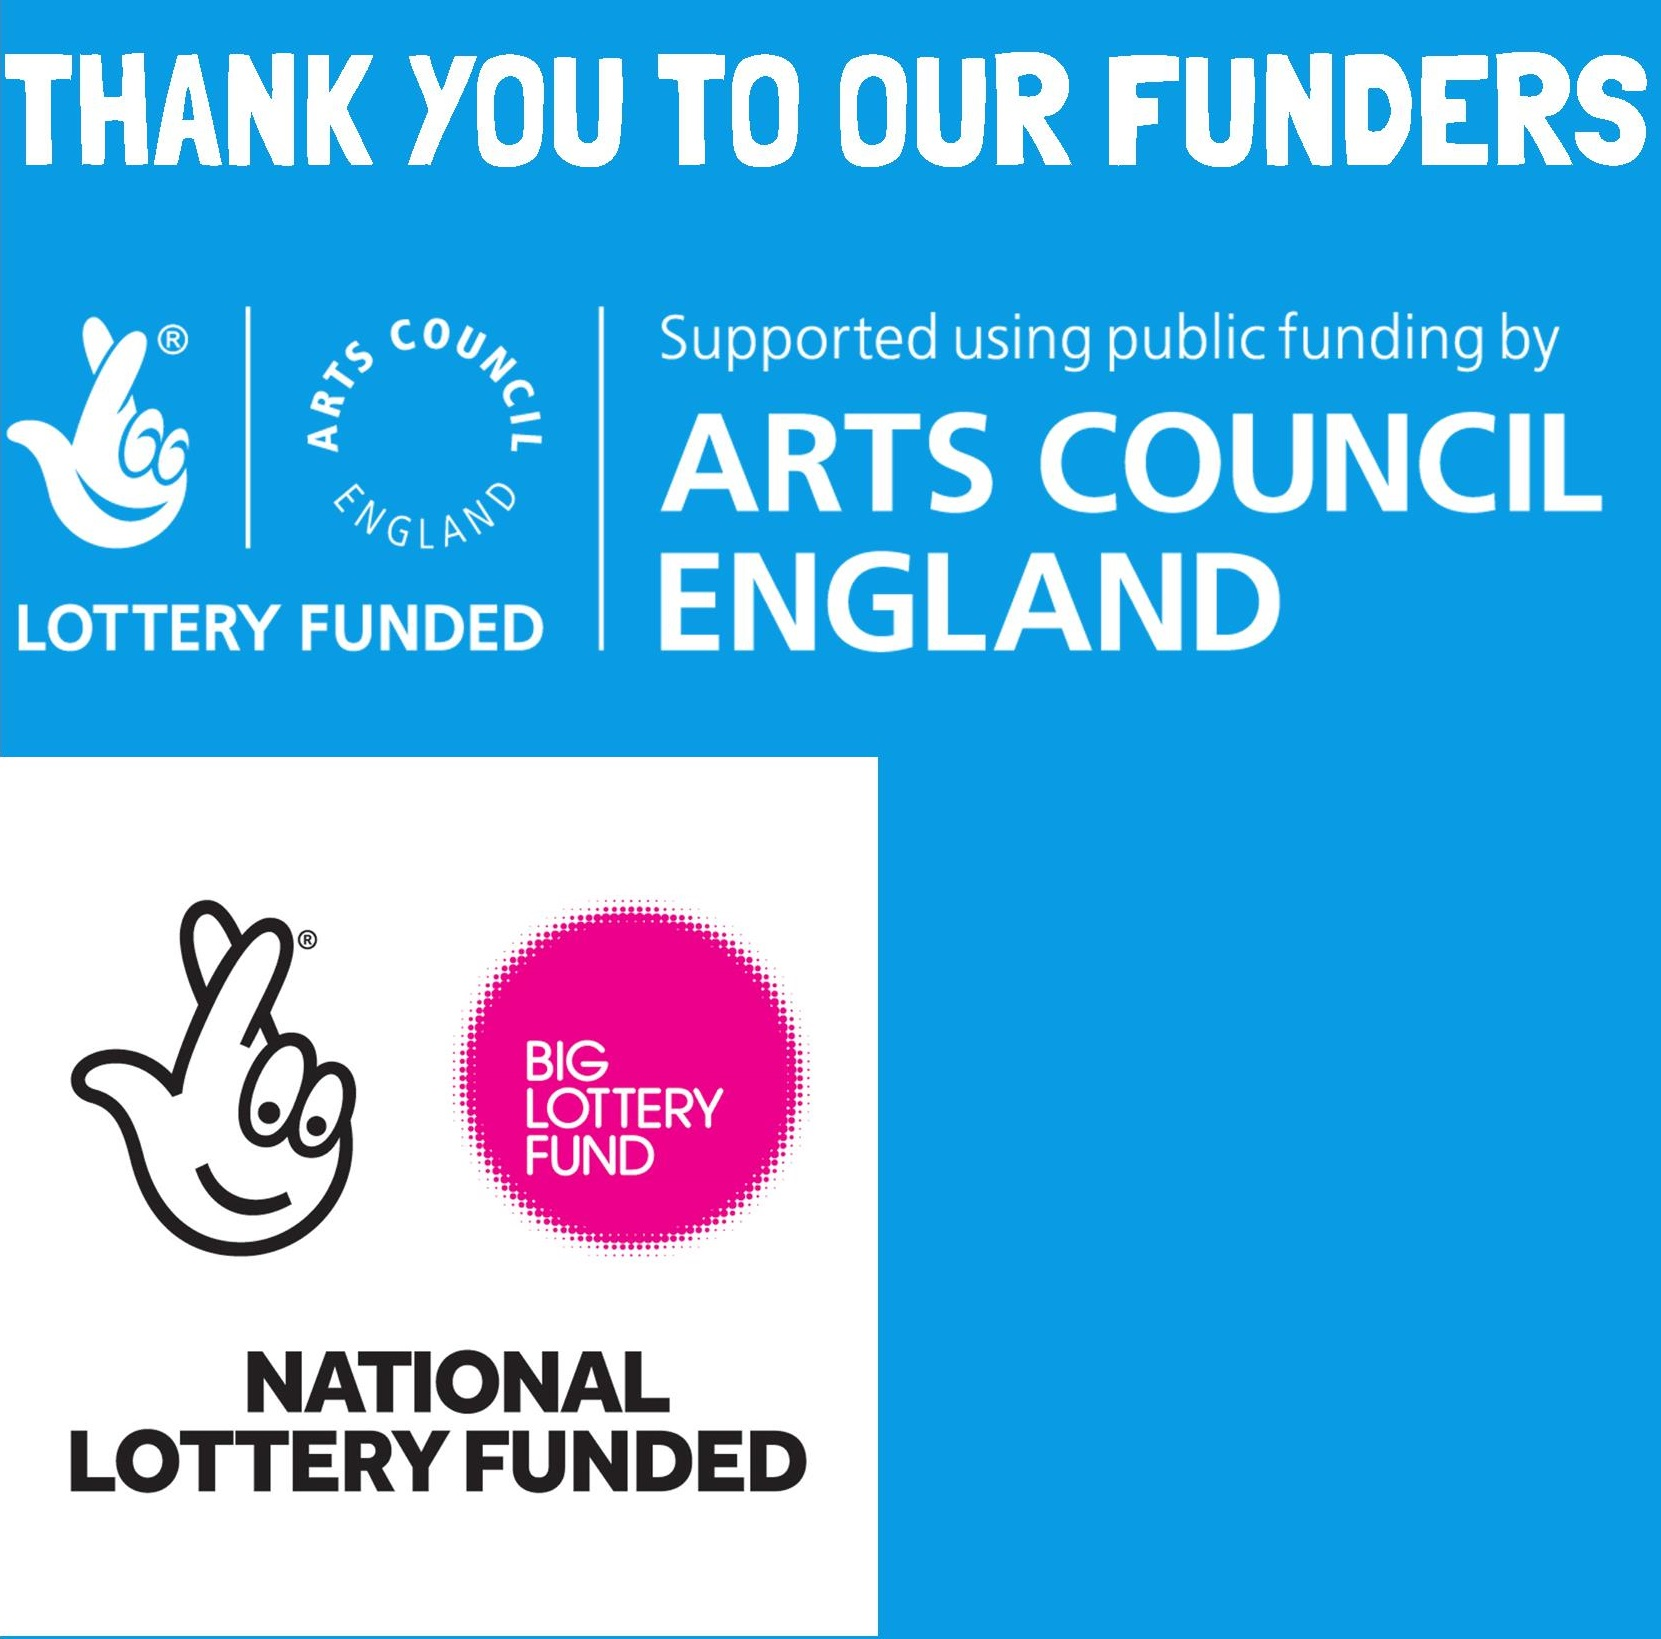 Thank you to our funders, including Arts Council England, Big Lottery Fund...